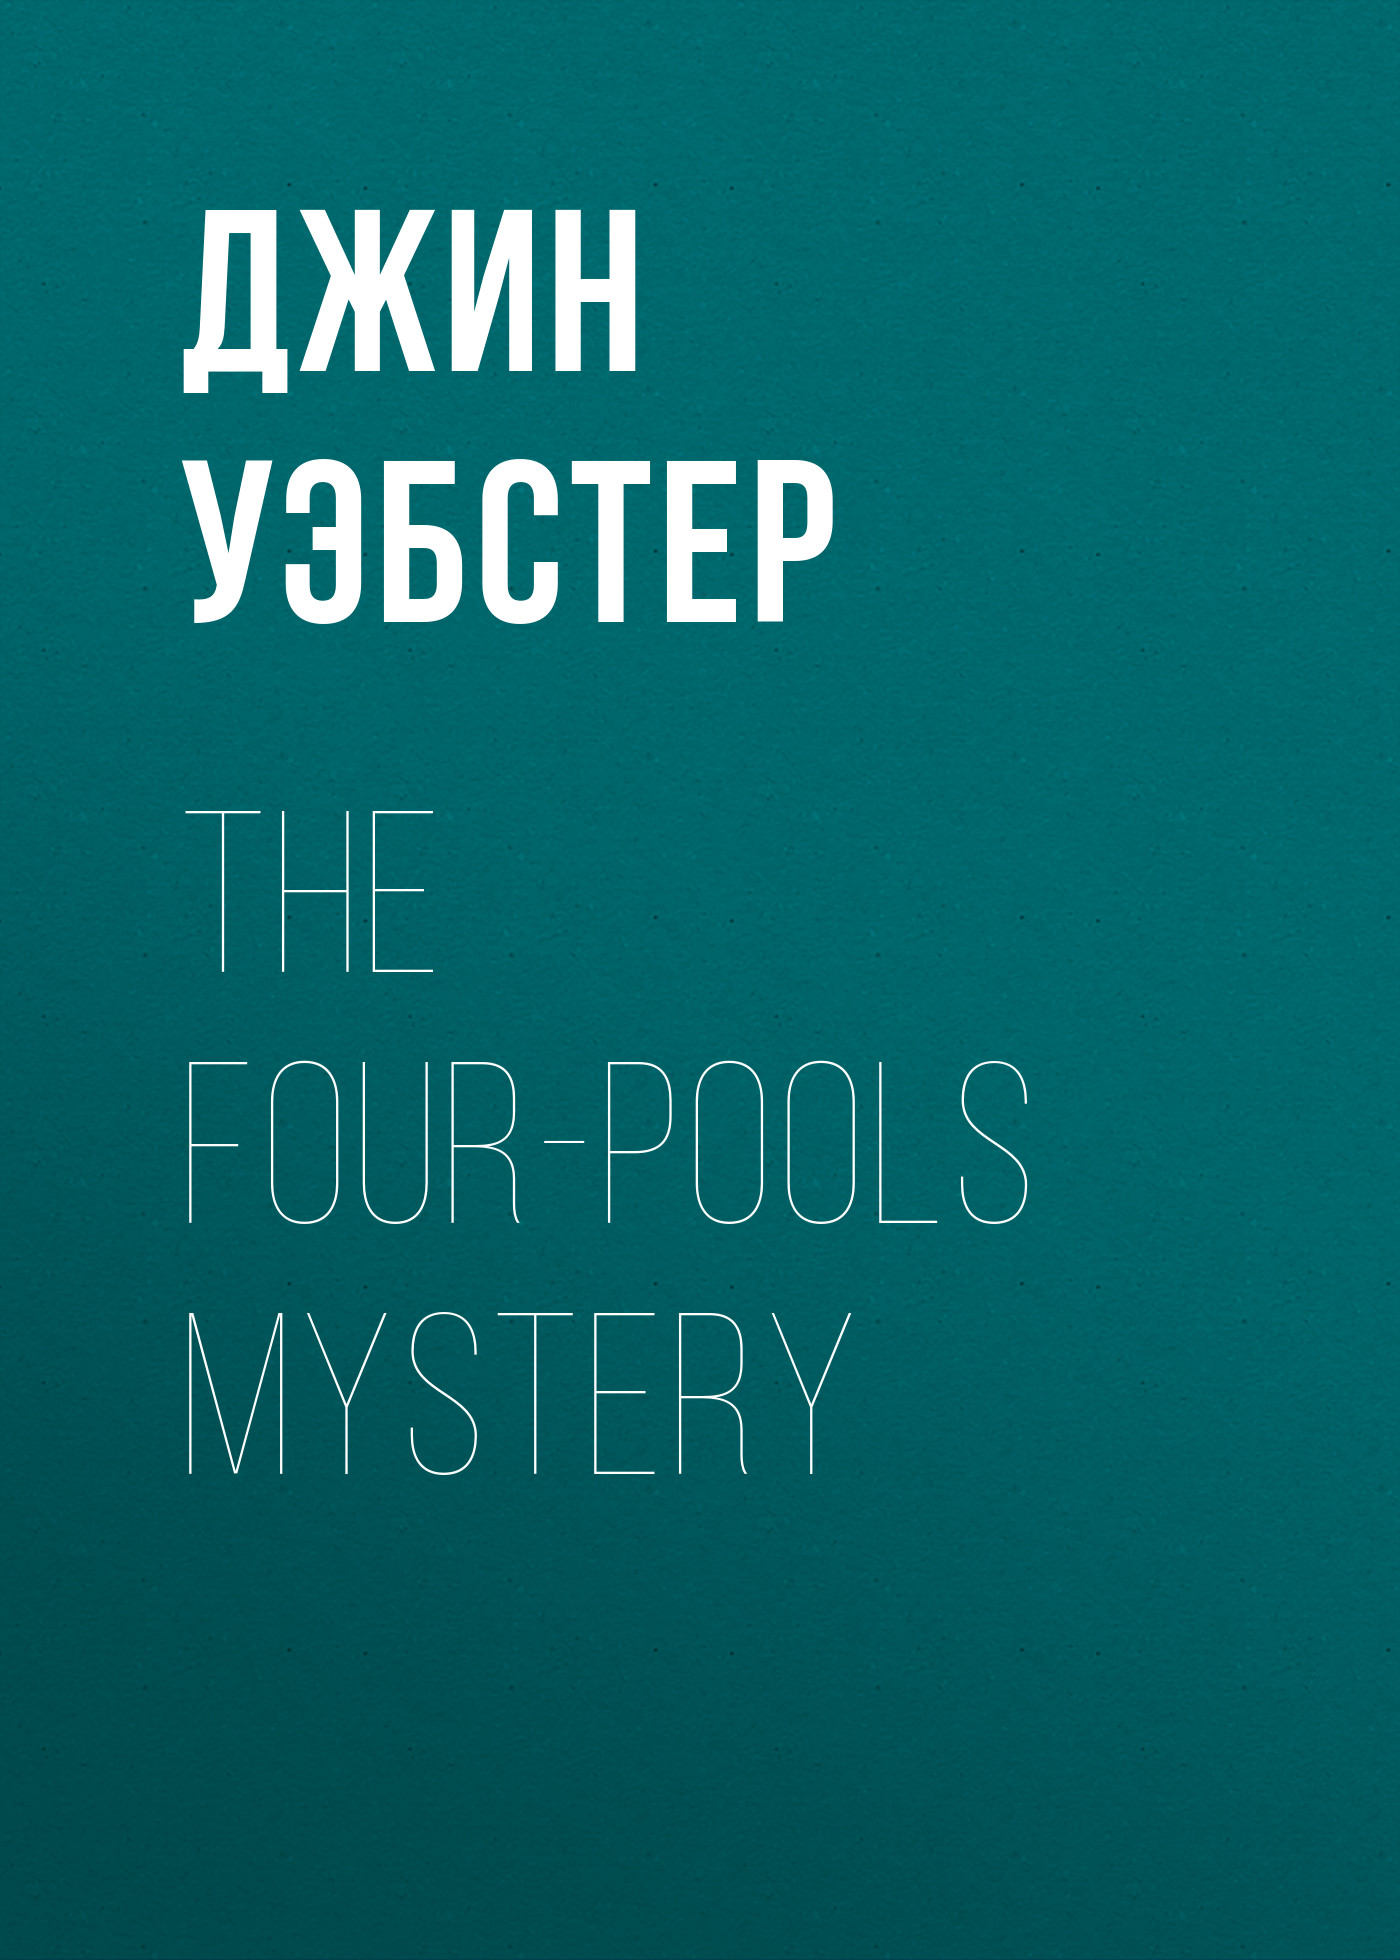 Джин Уэбстер The Four-Pools Mystery цена и фото